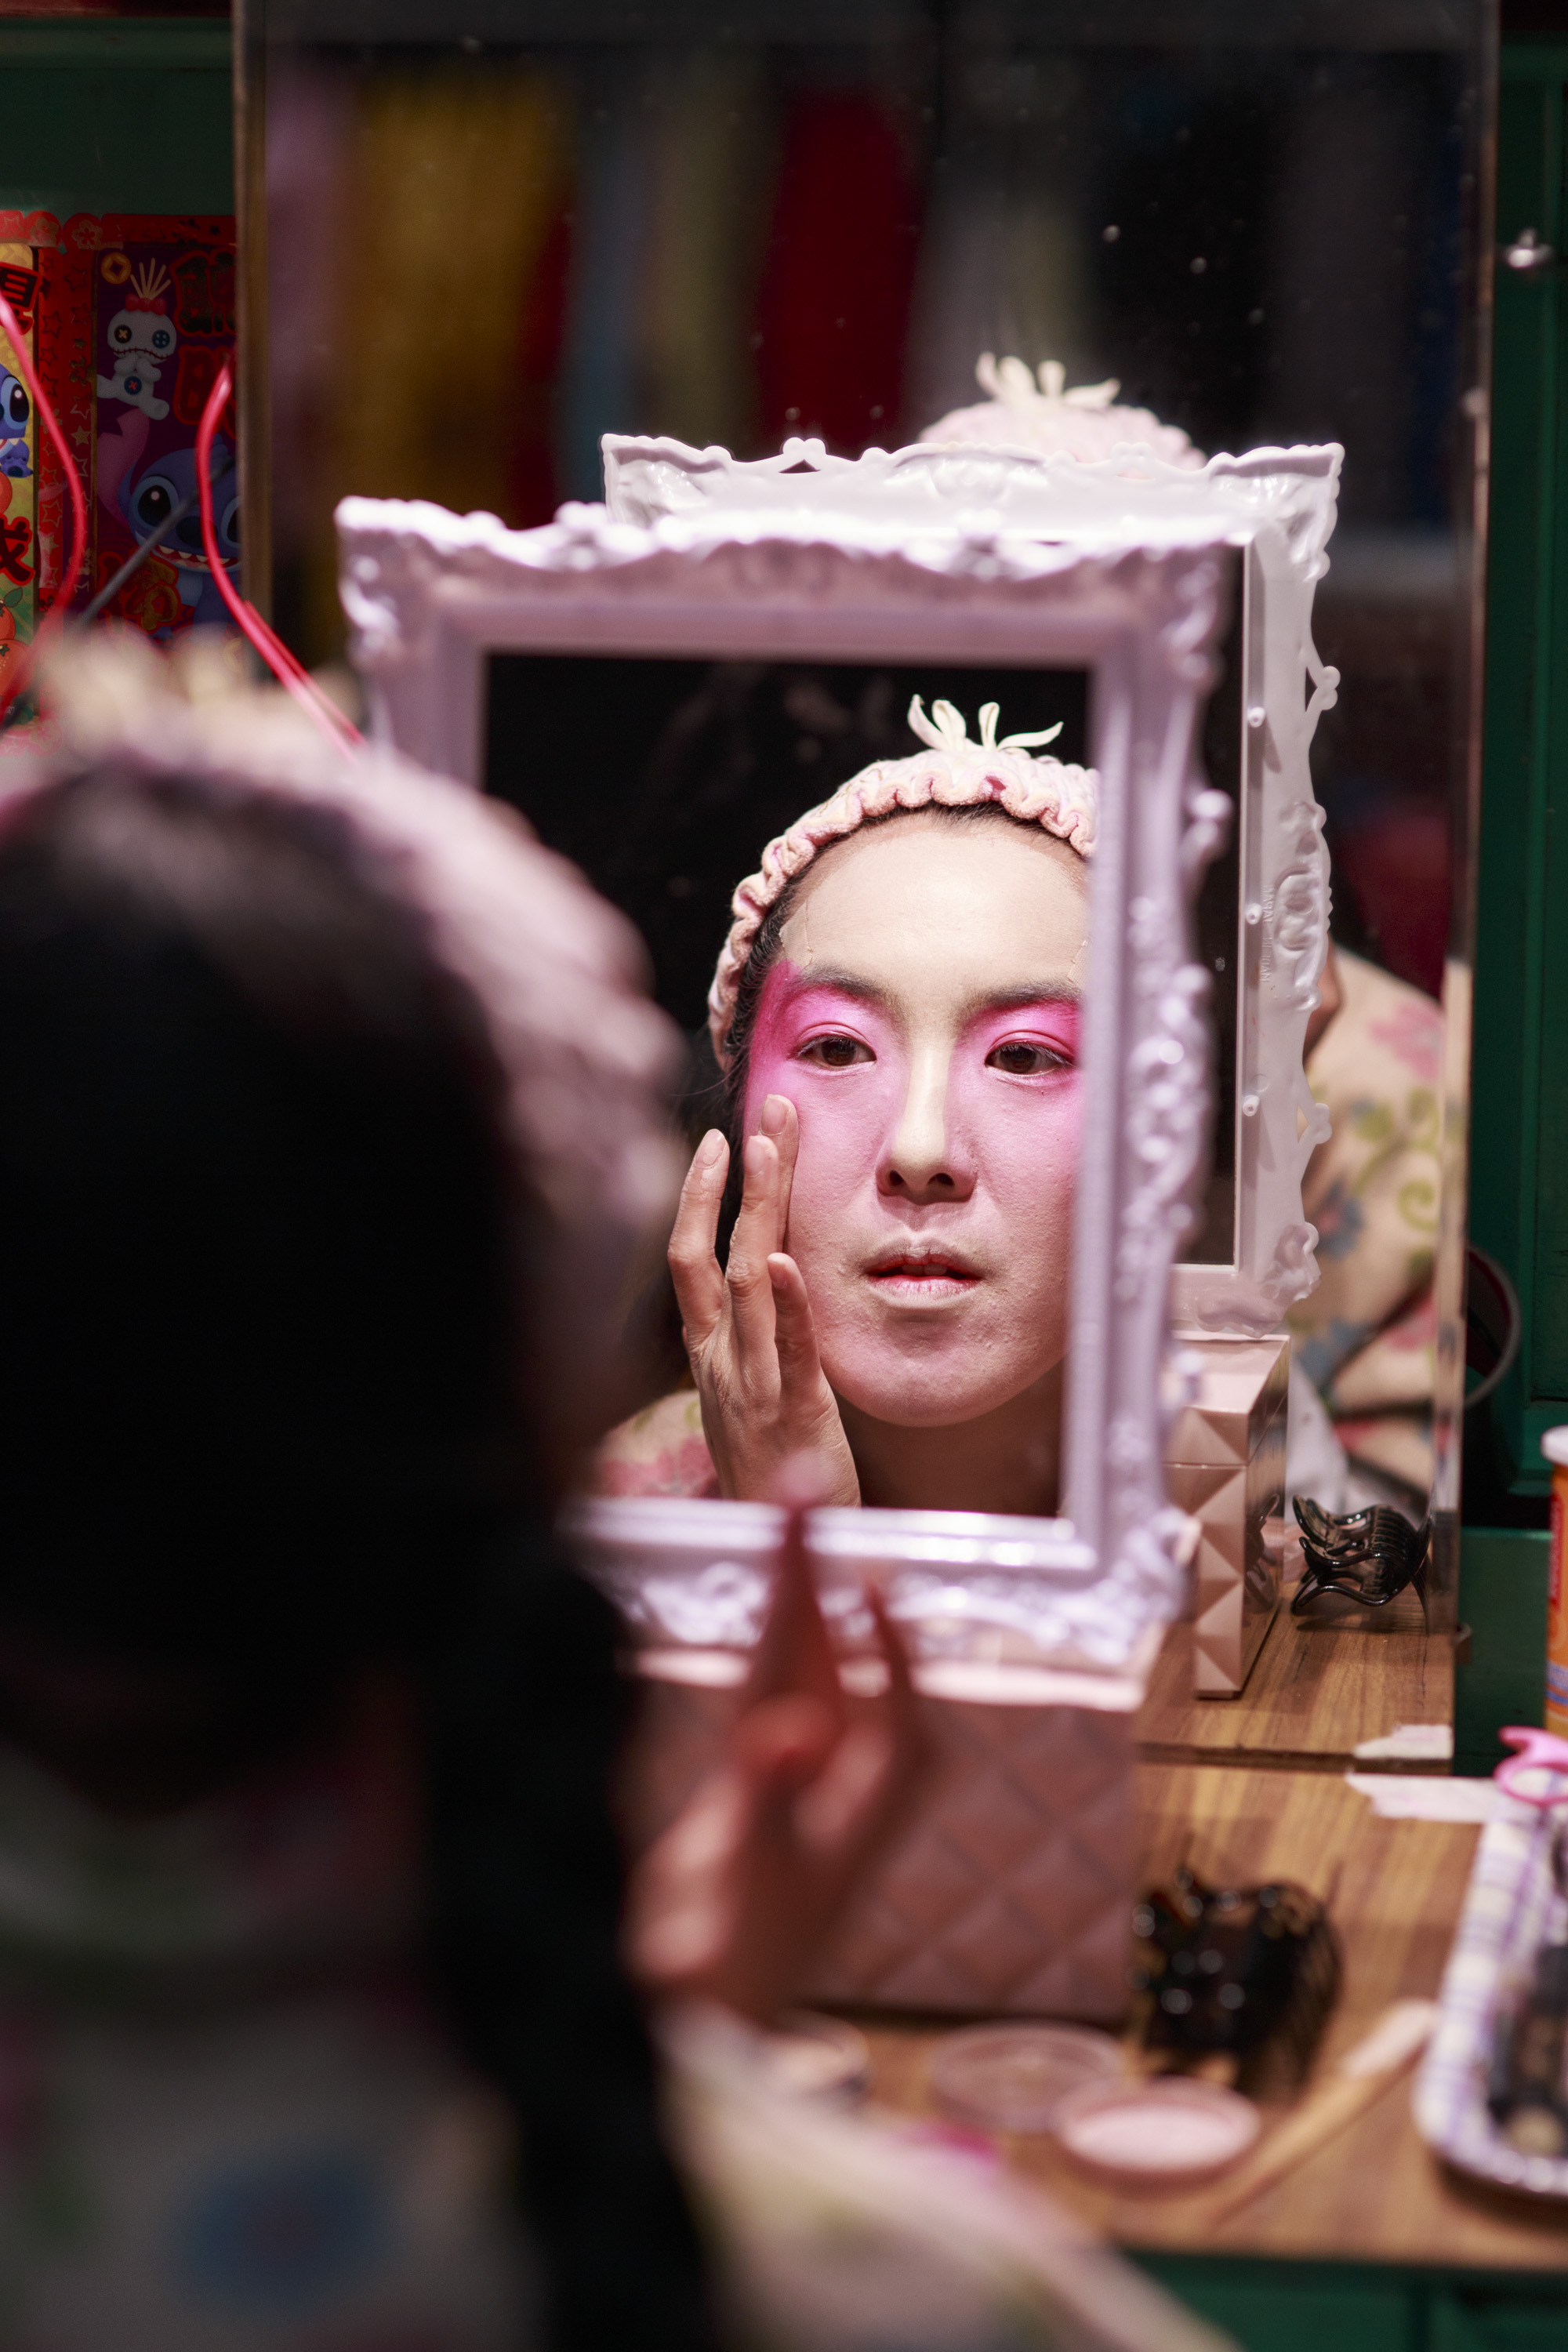 Eliza Li, Chinese Opera singer seen here applying makeup for her performance